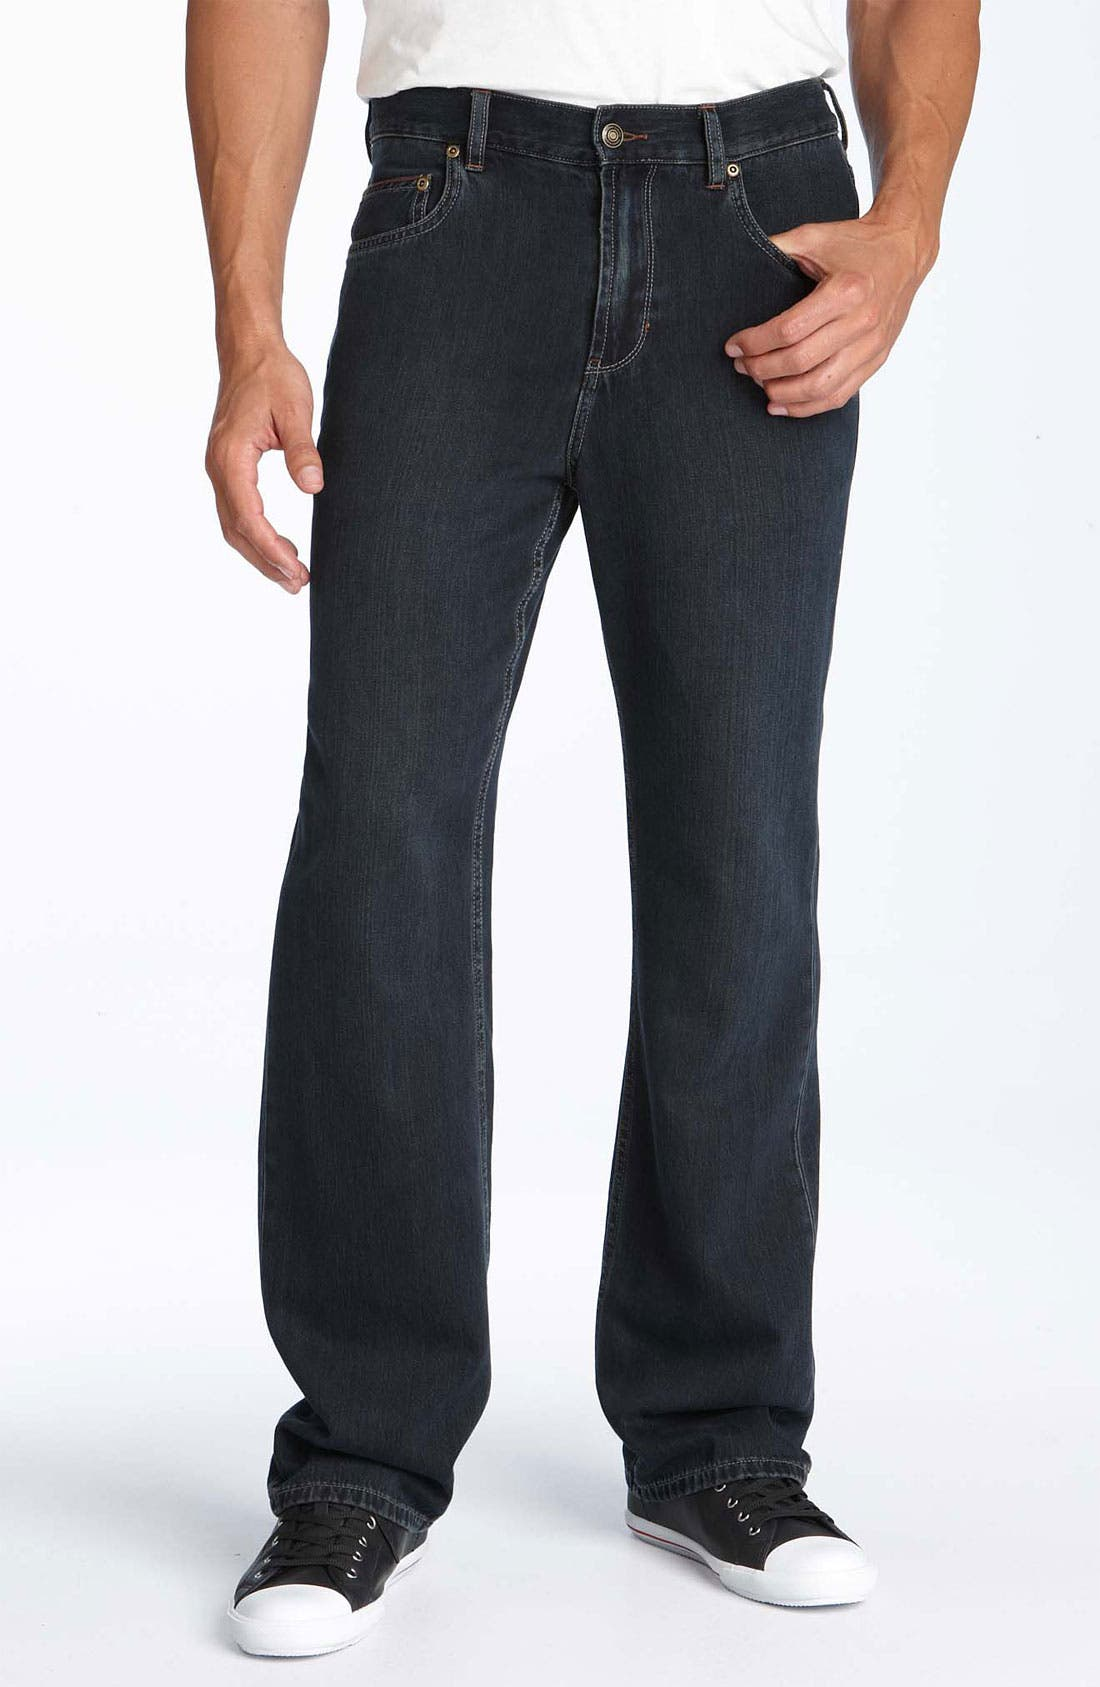 Main Image - Tommy Bahama Denim 'Island Ease' Straight Leg Jeans (Black Overdye)